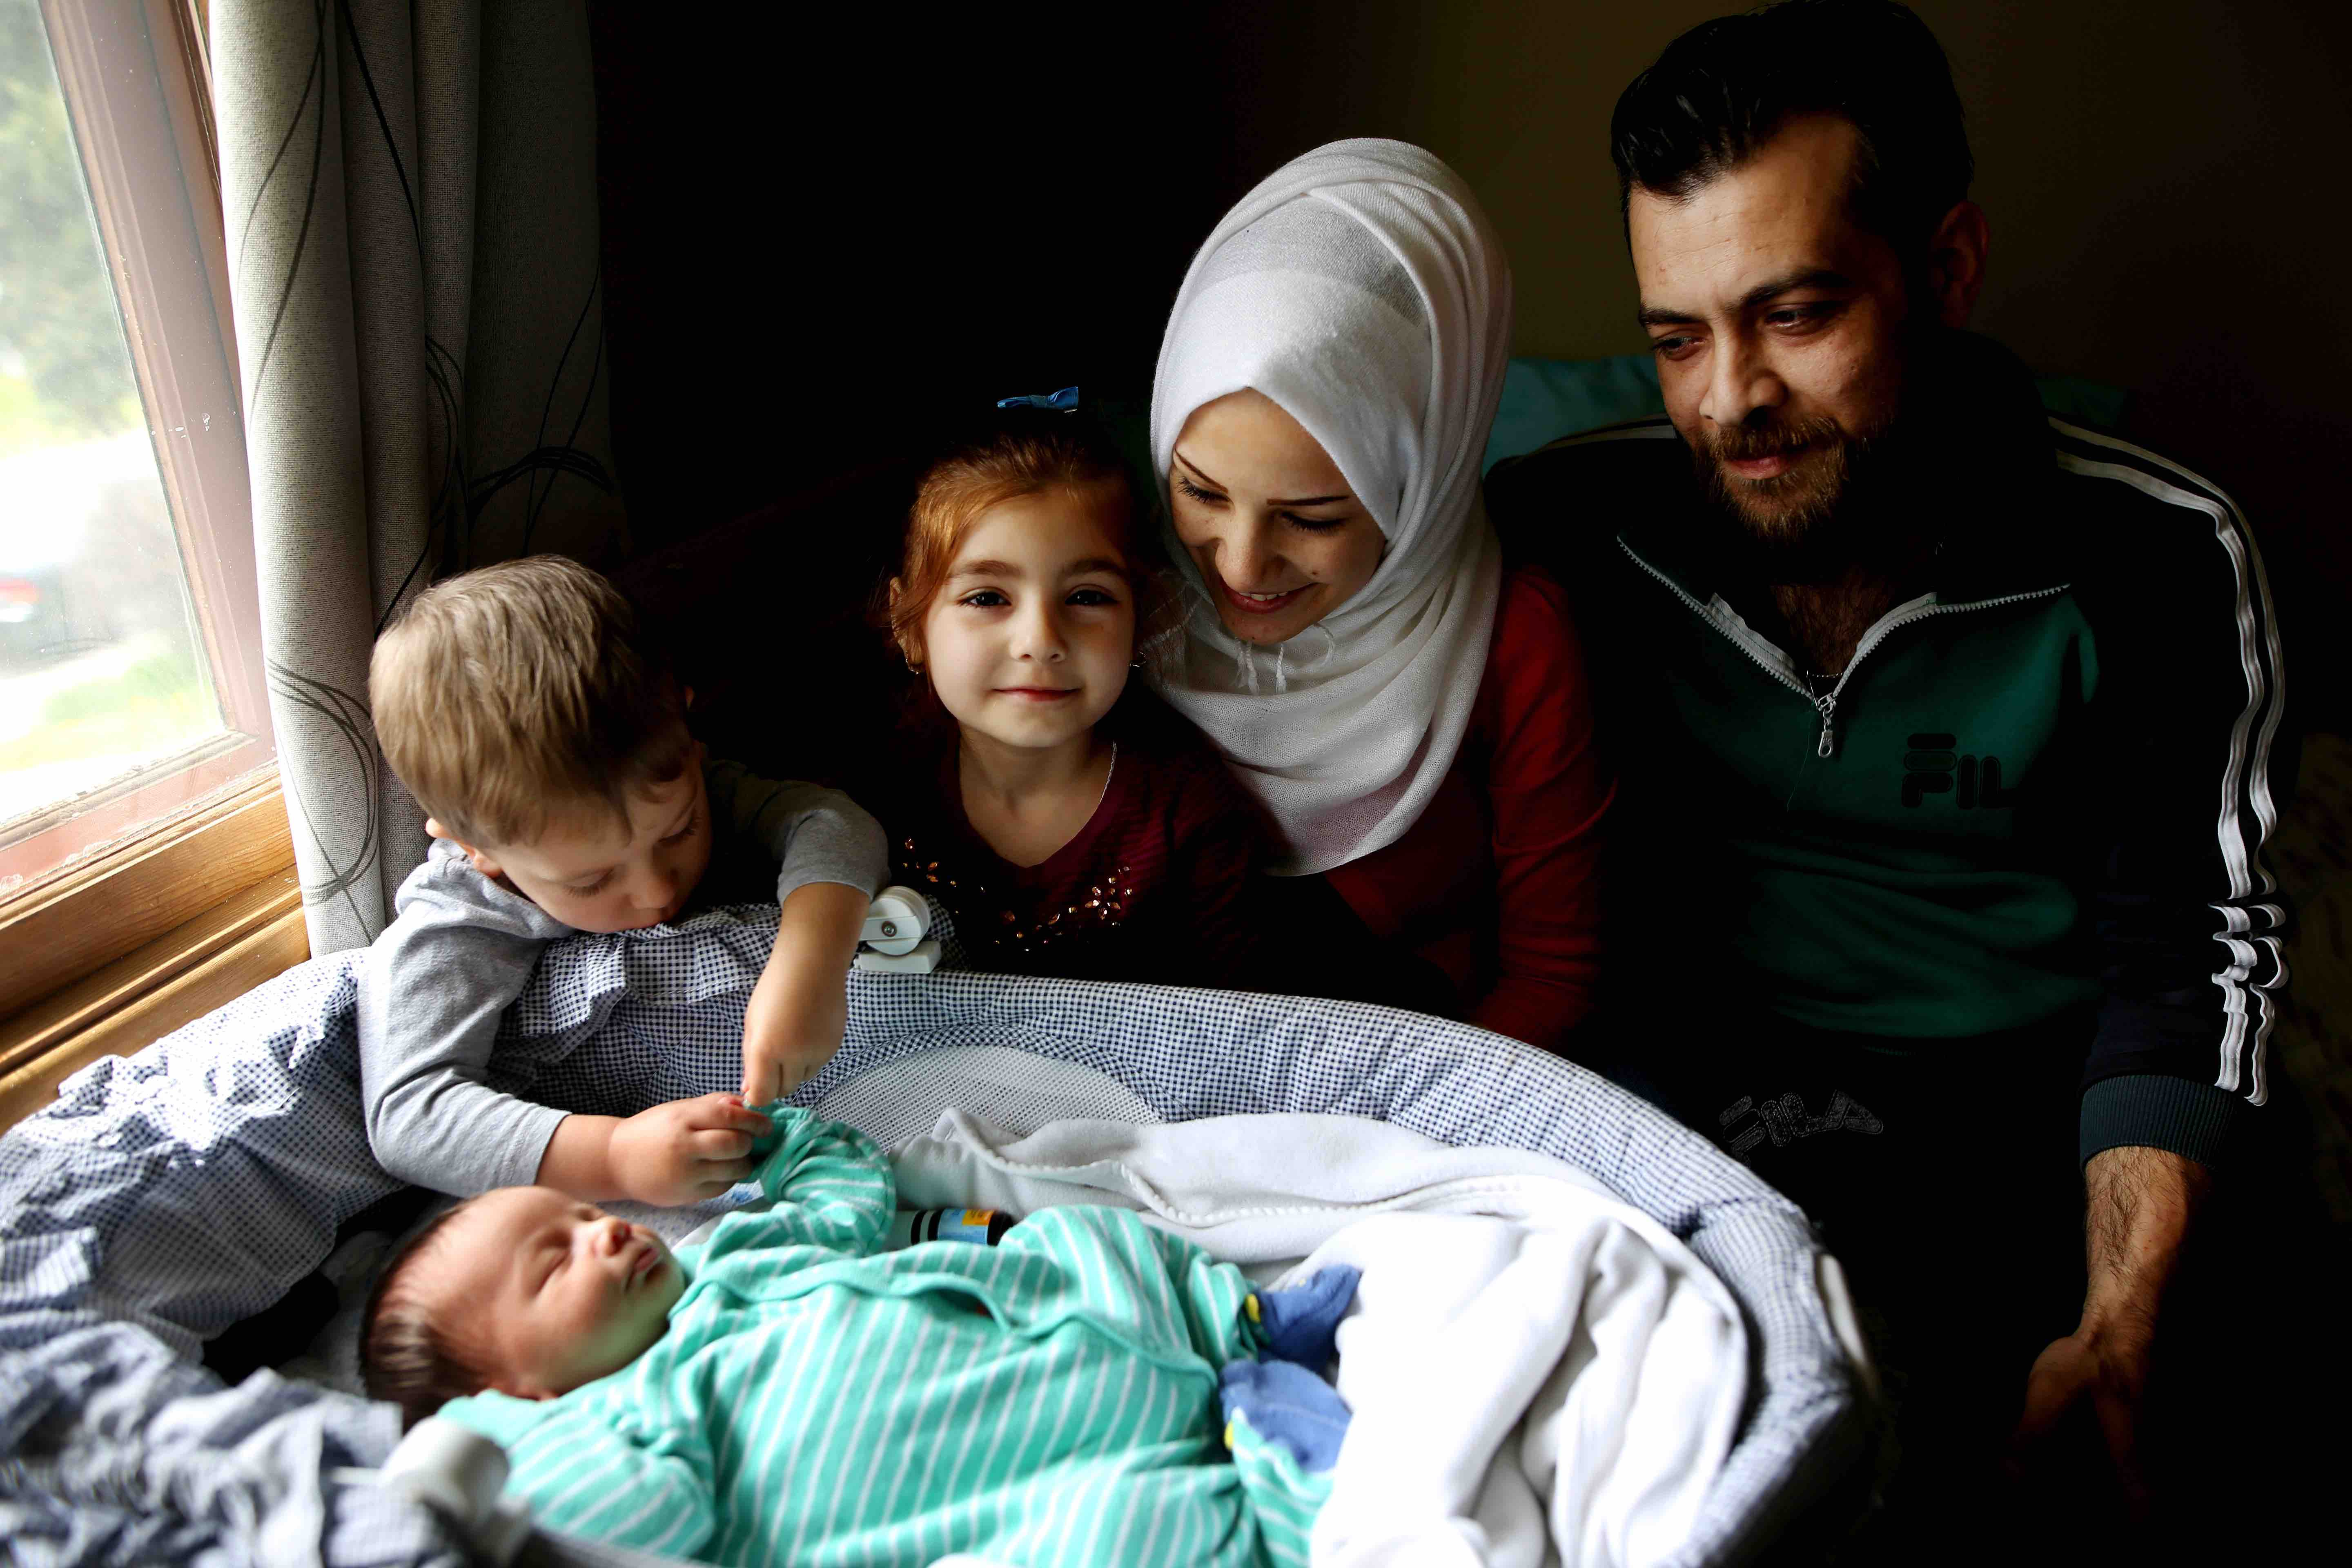 Syrian Refugees: A New Home, A New Life